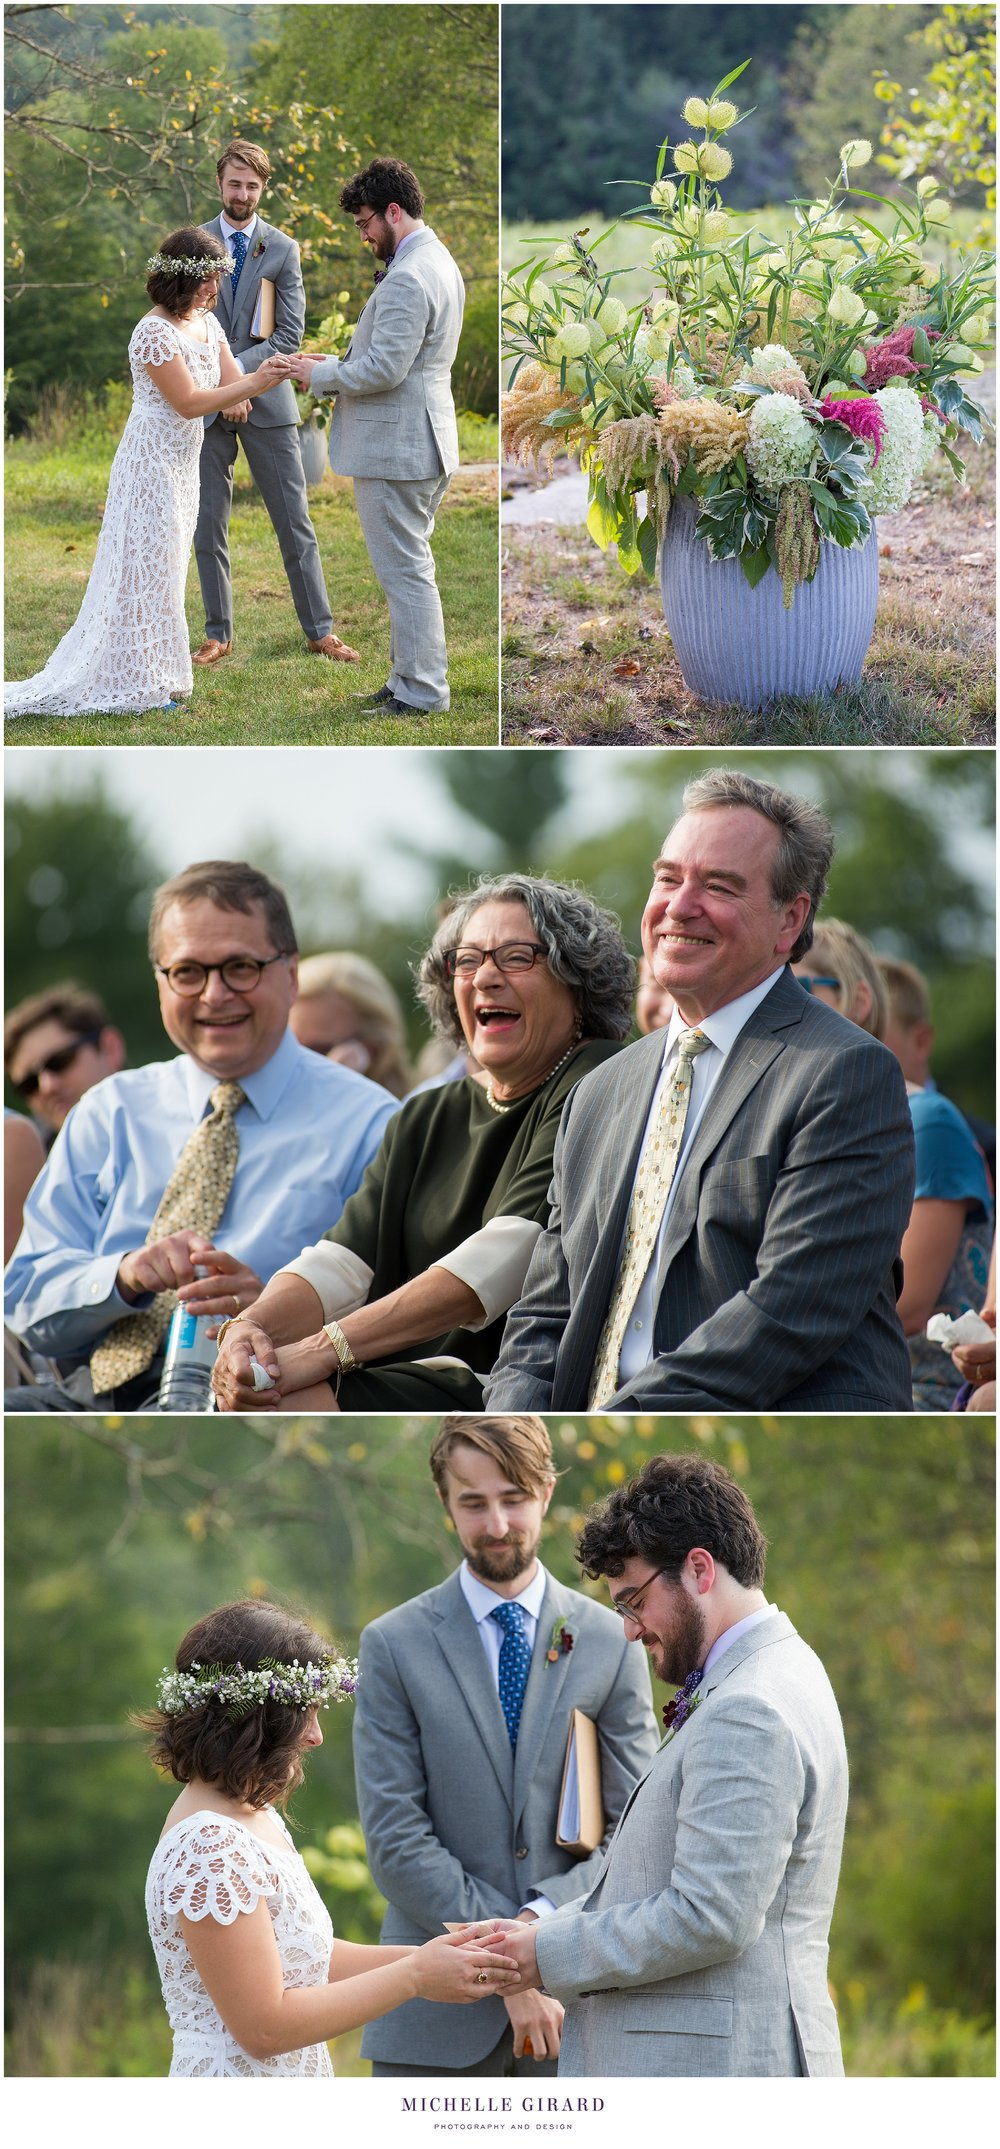 RusticWedding_MaplewoodFamilyFarm_MountainTopCeremony_MichelleGirardPhotography15.jpg